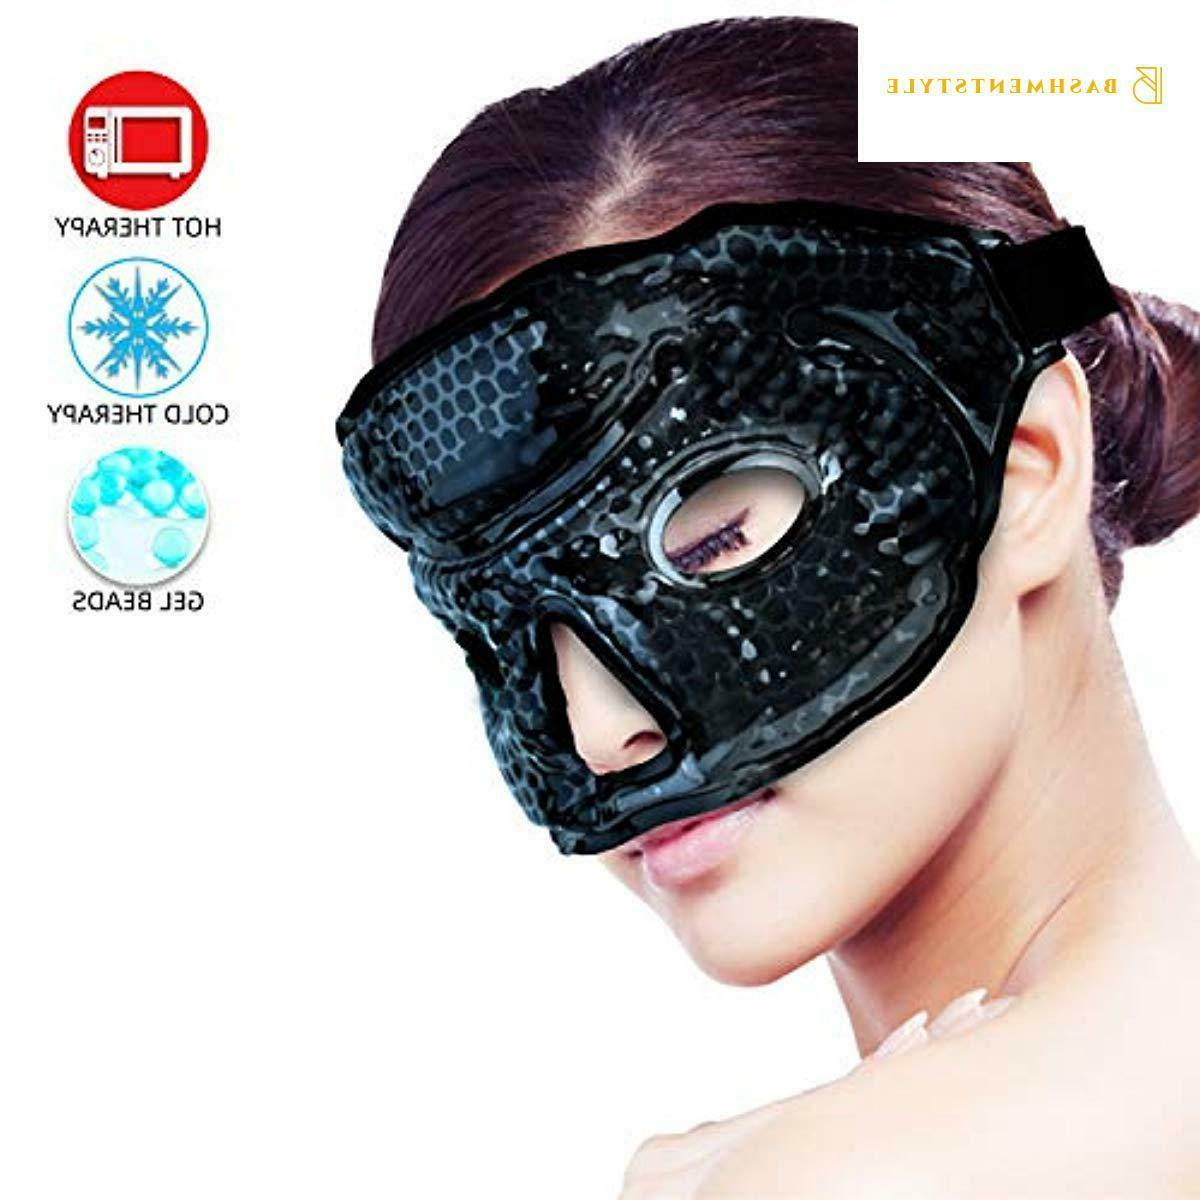 Ice Mask Woman Man, Hot/Cold Gel Beads with